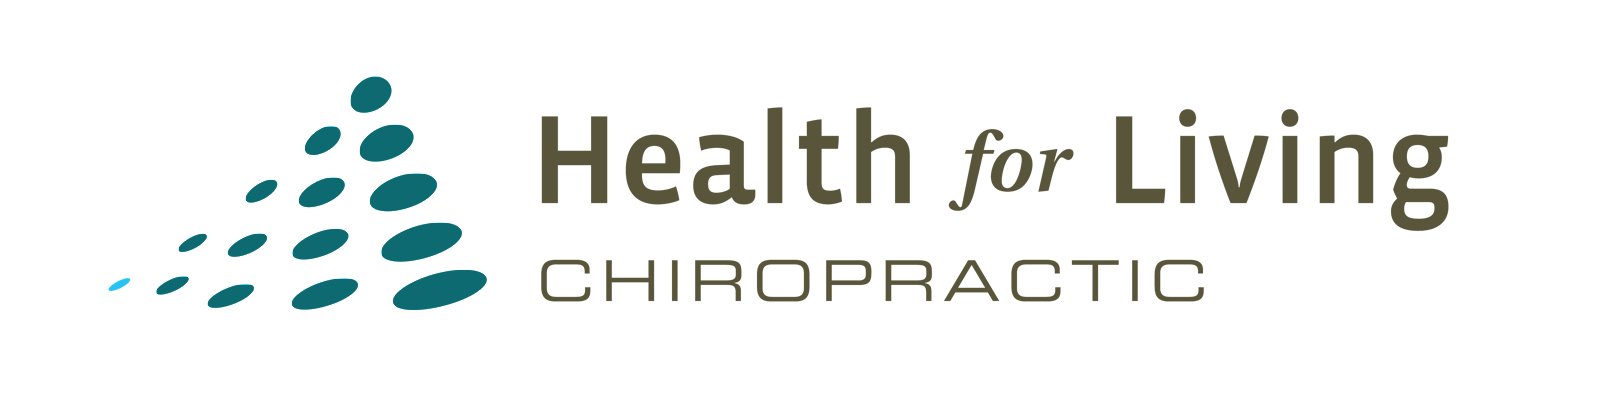 Health For Living Chiropractic